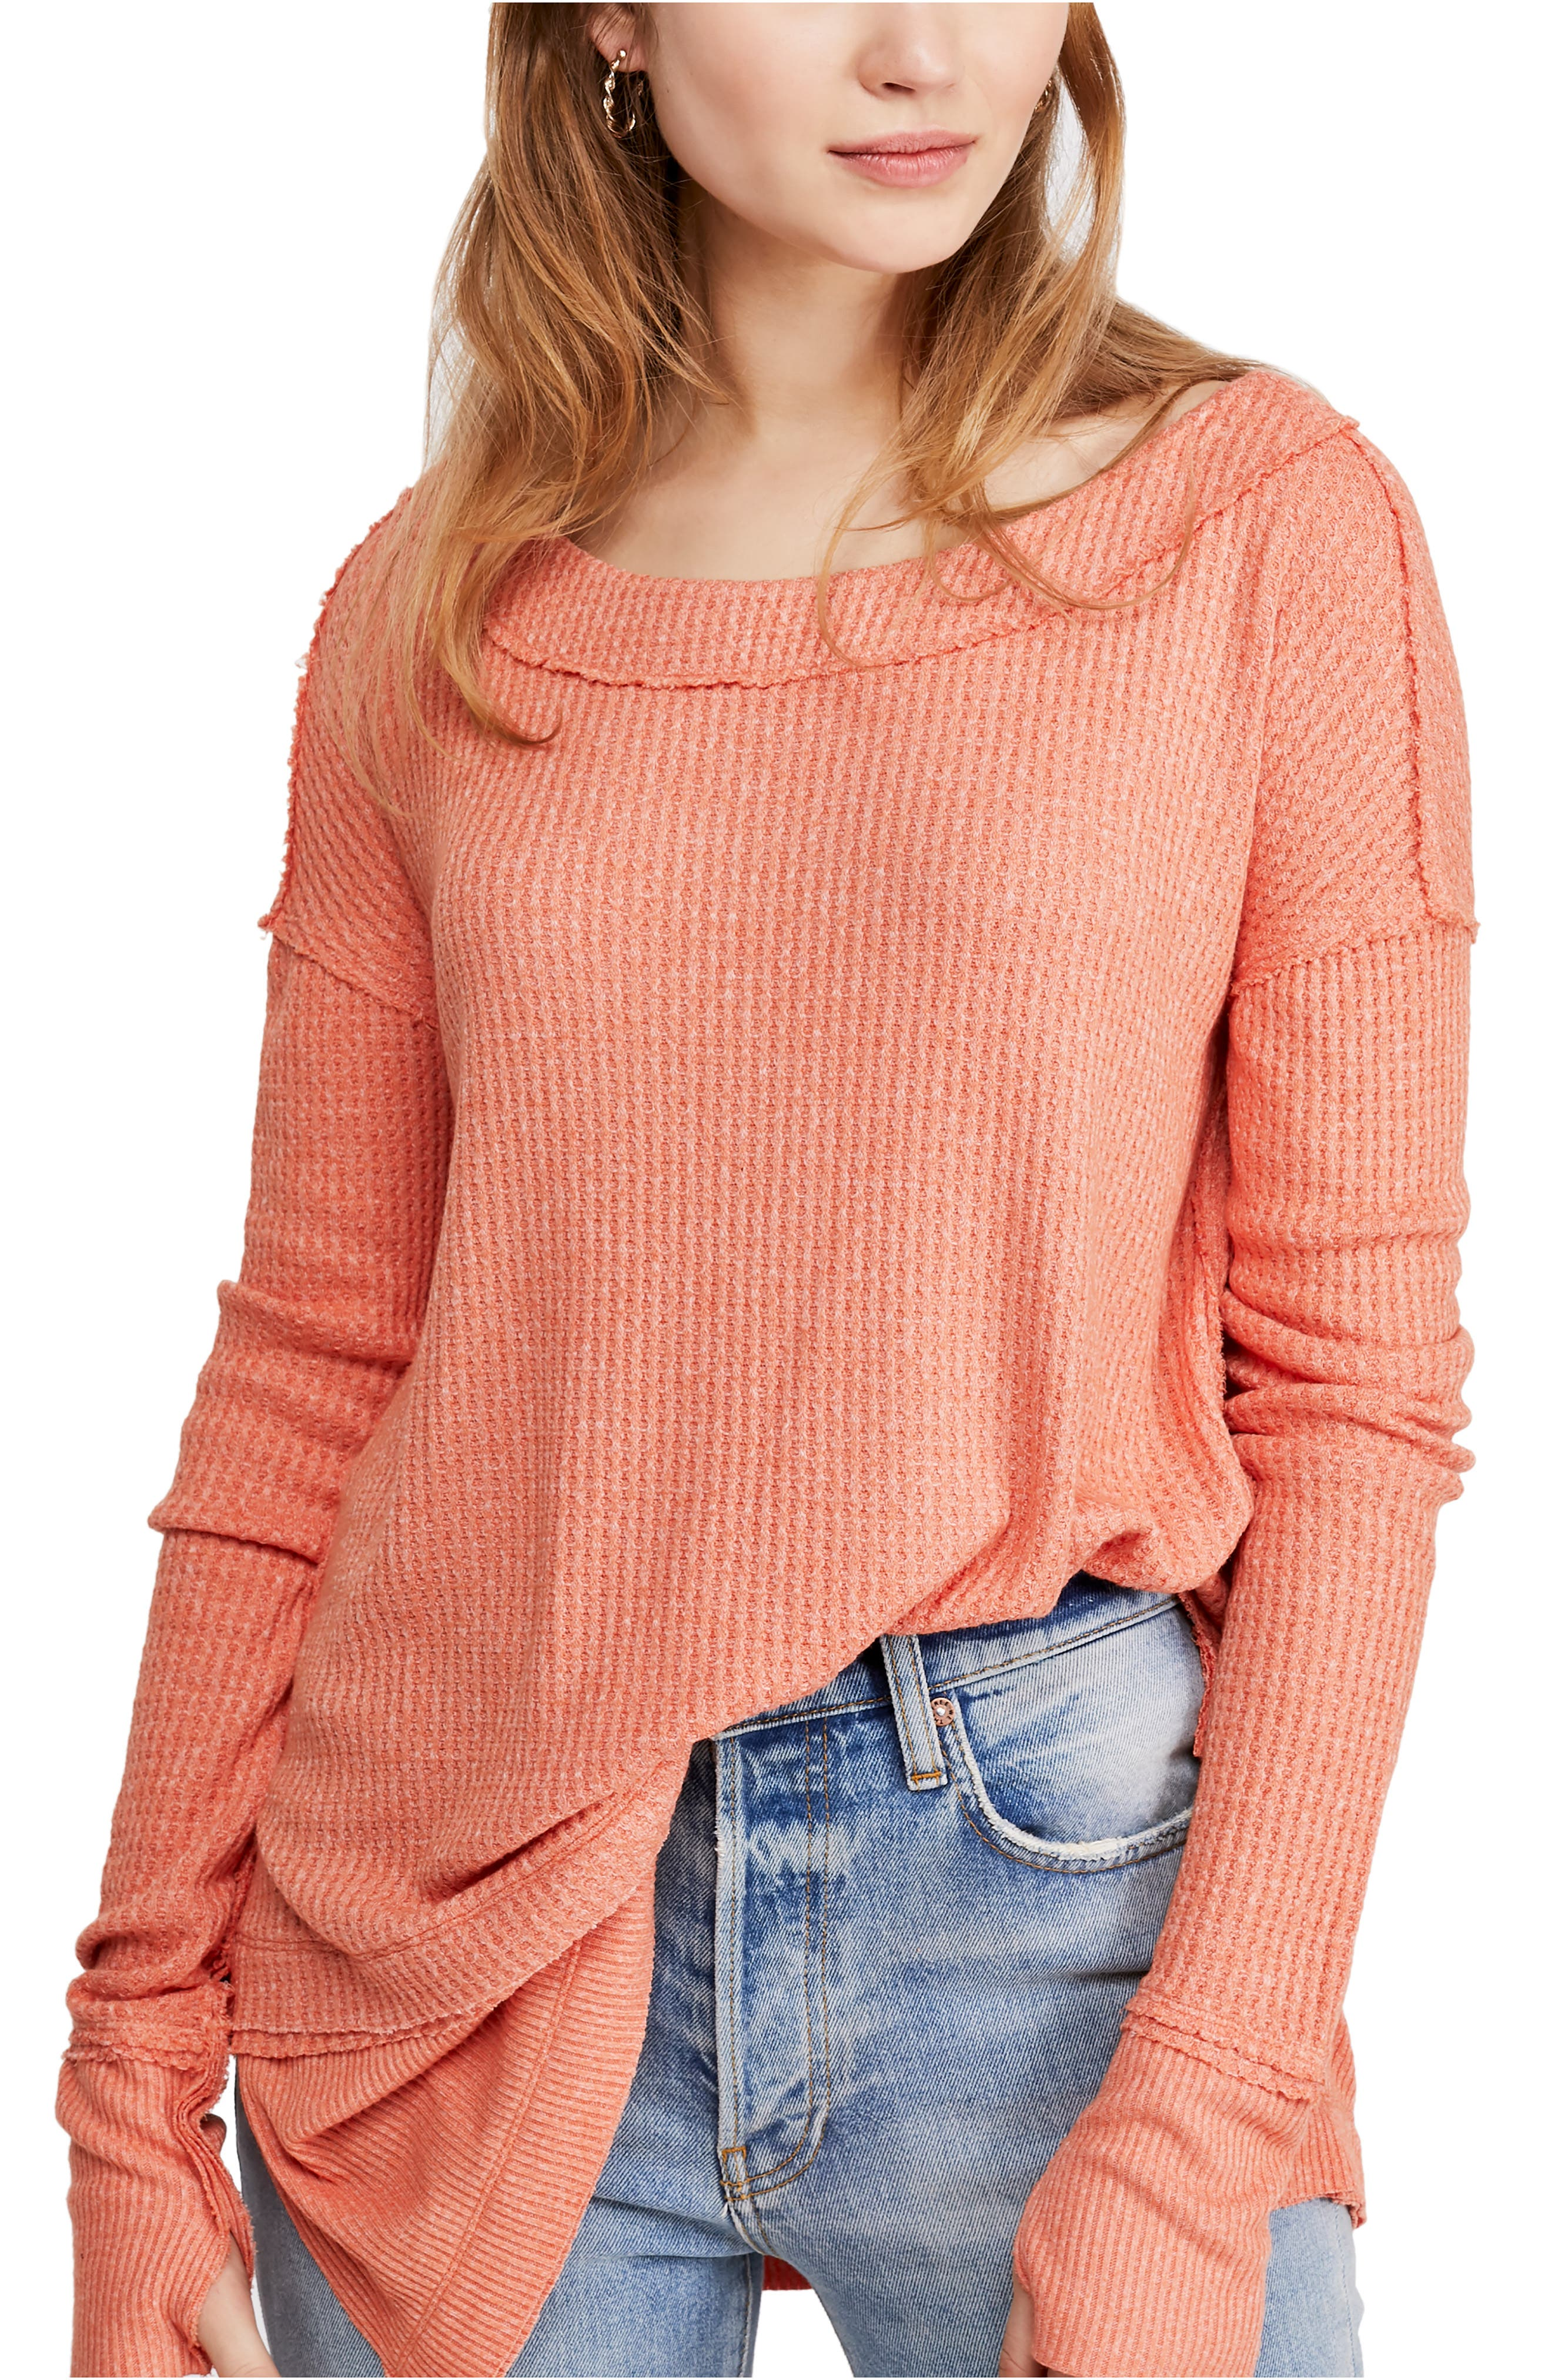 Image of Free People North Shore Thermal Knit Tunic Top